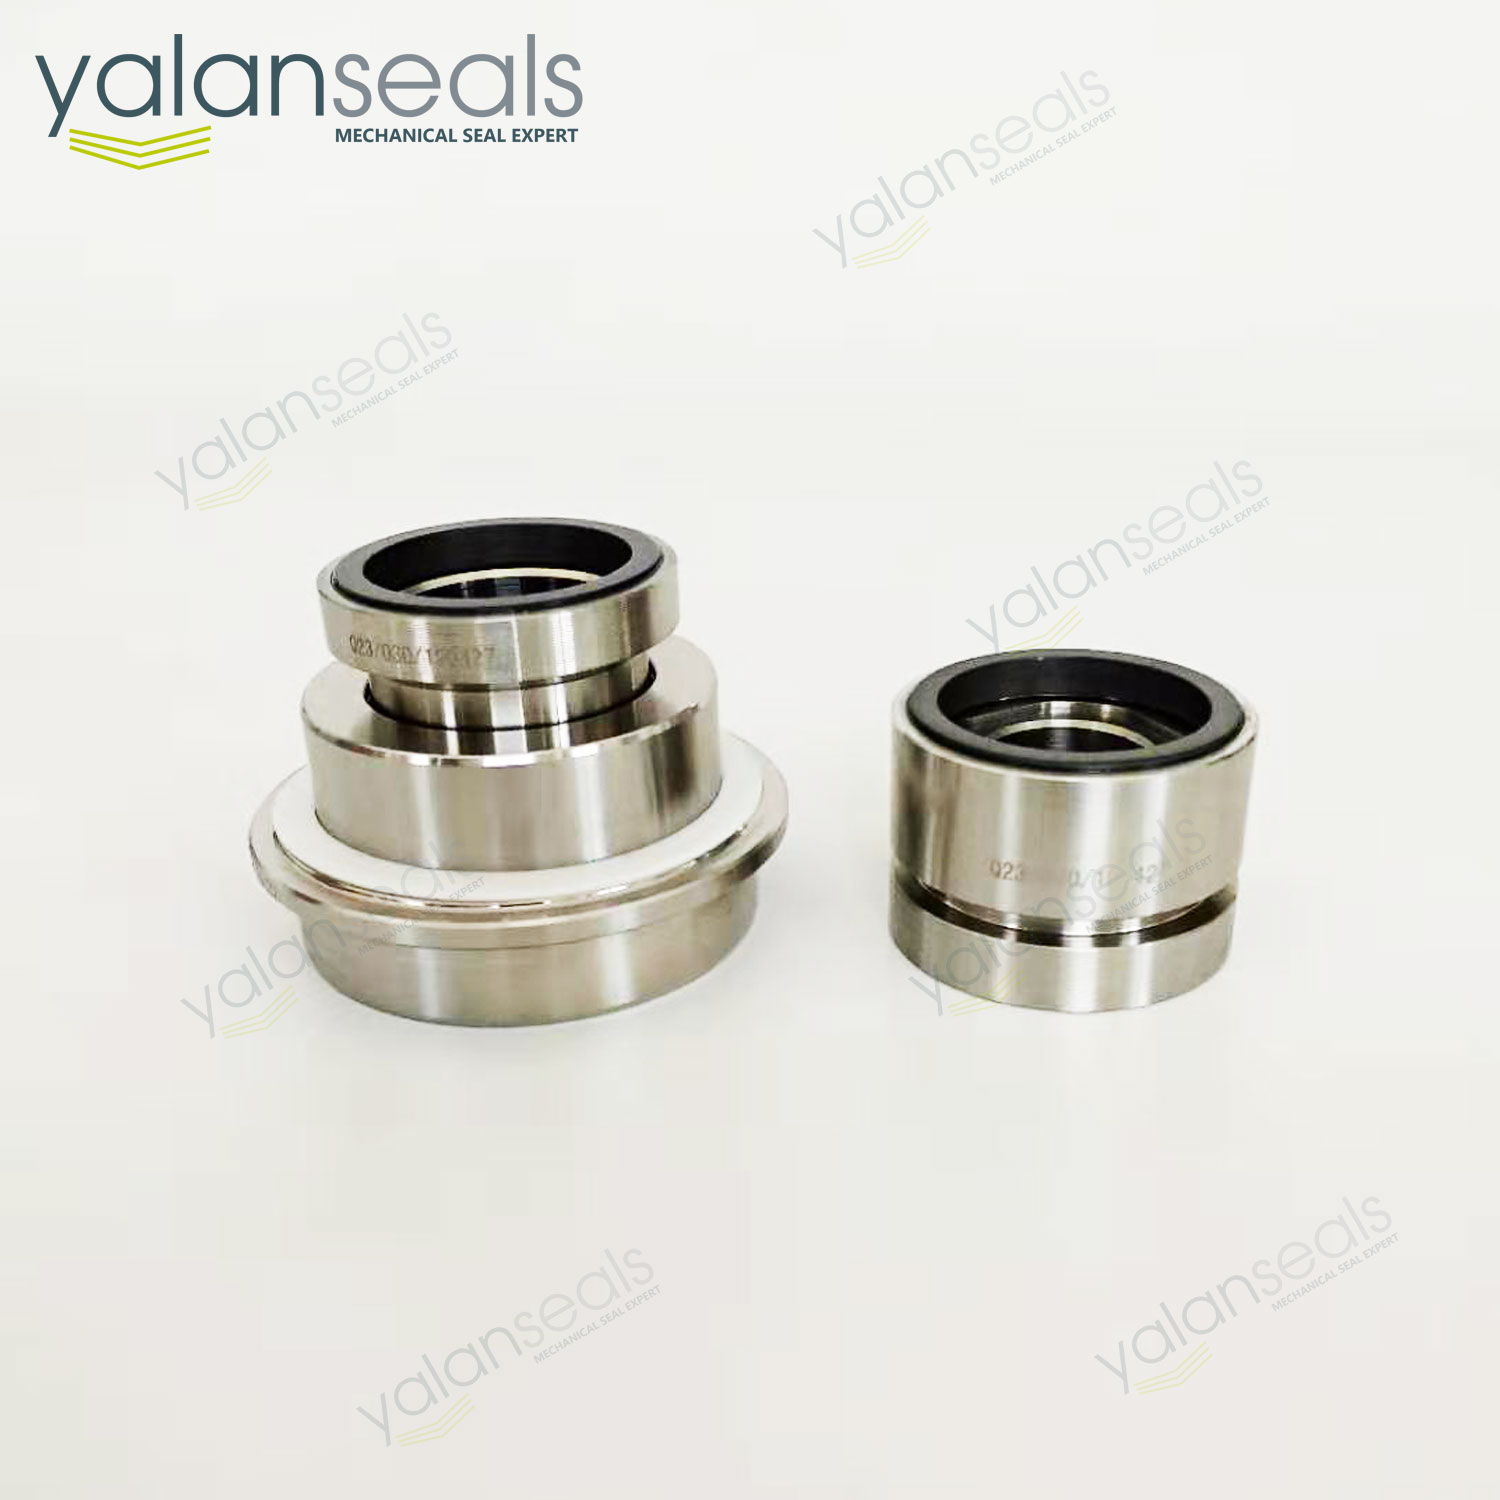 SE1-AP Mechanical Seal